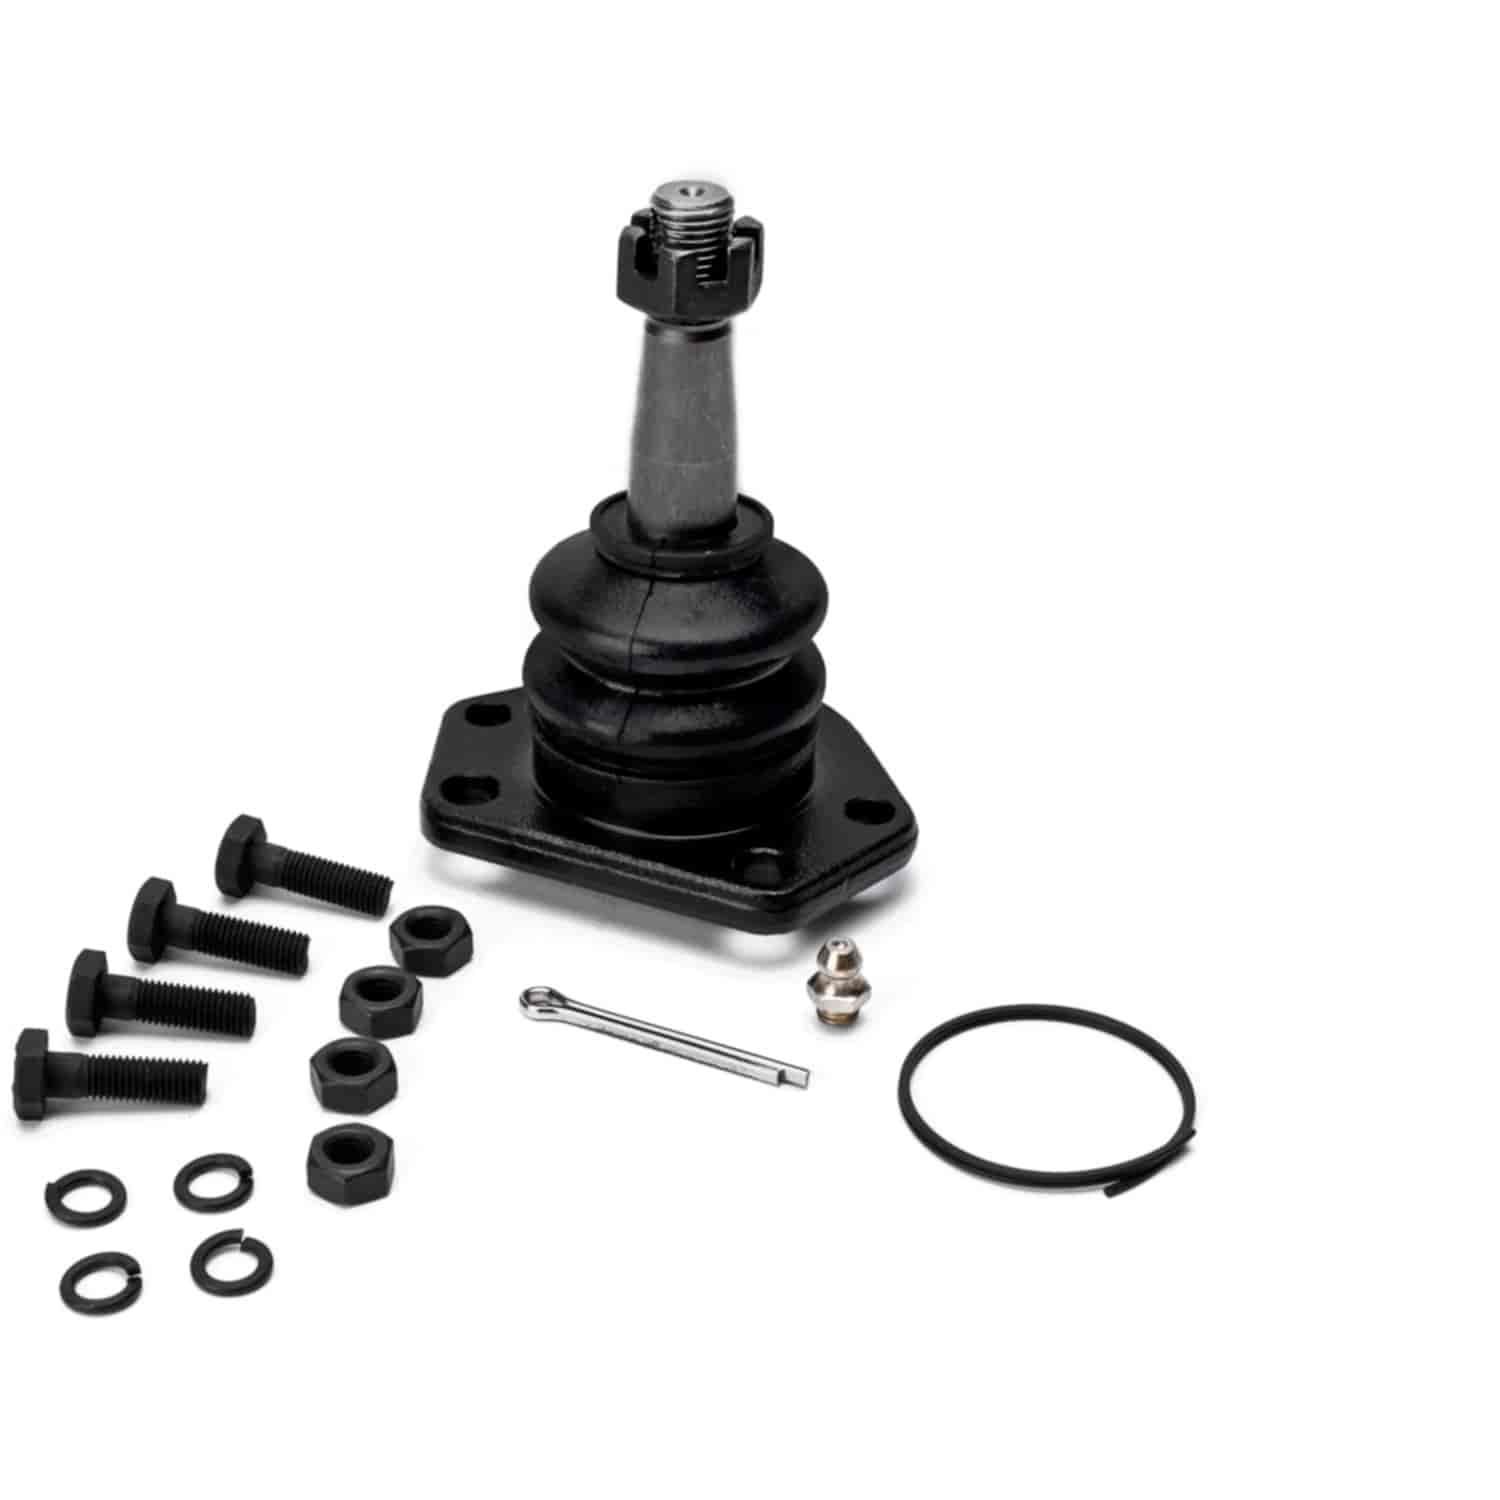 Proforged 101-10020 - Proforged Tall Ball Joints